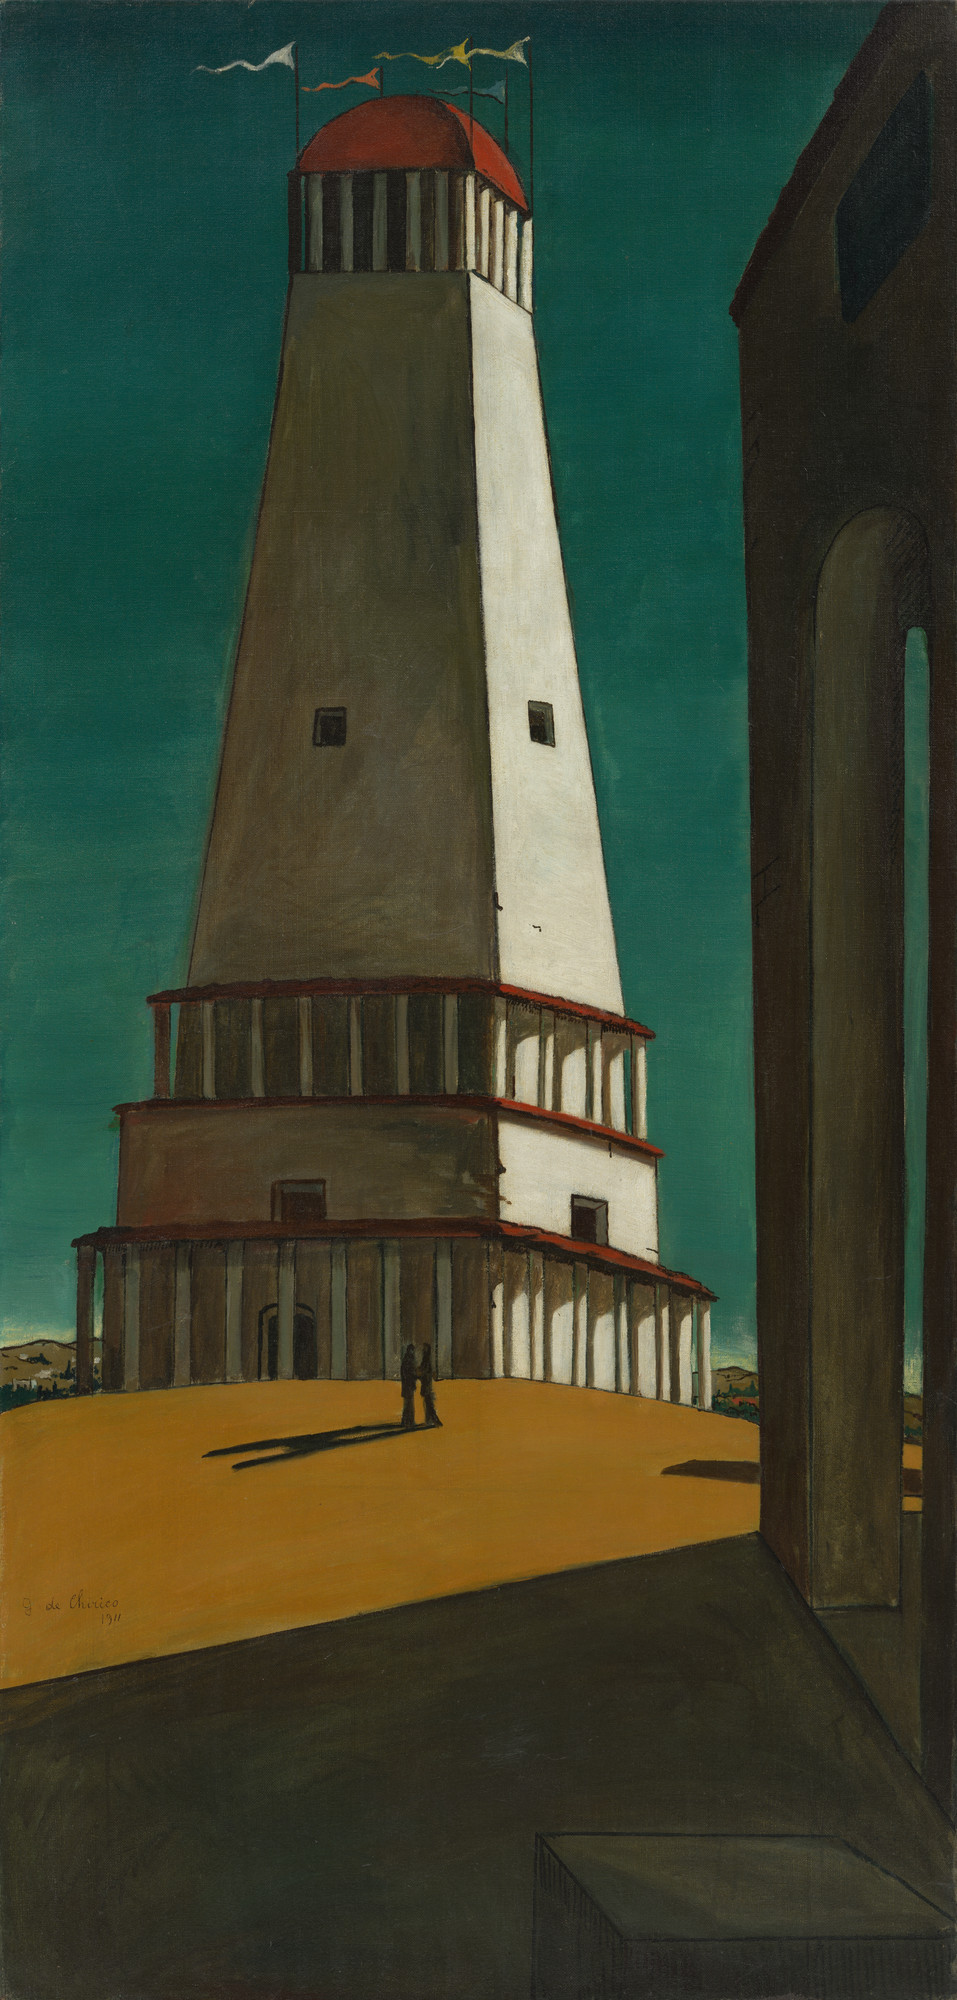 Giorgio de Chirico. The Nostalgia of the Infinite. Paris 1912-13? (dated on painting 1911)